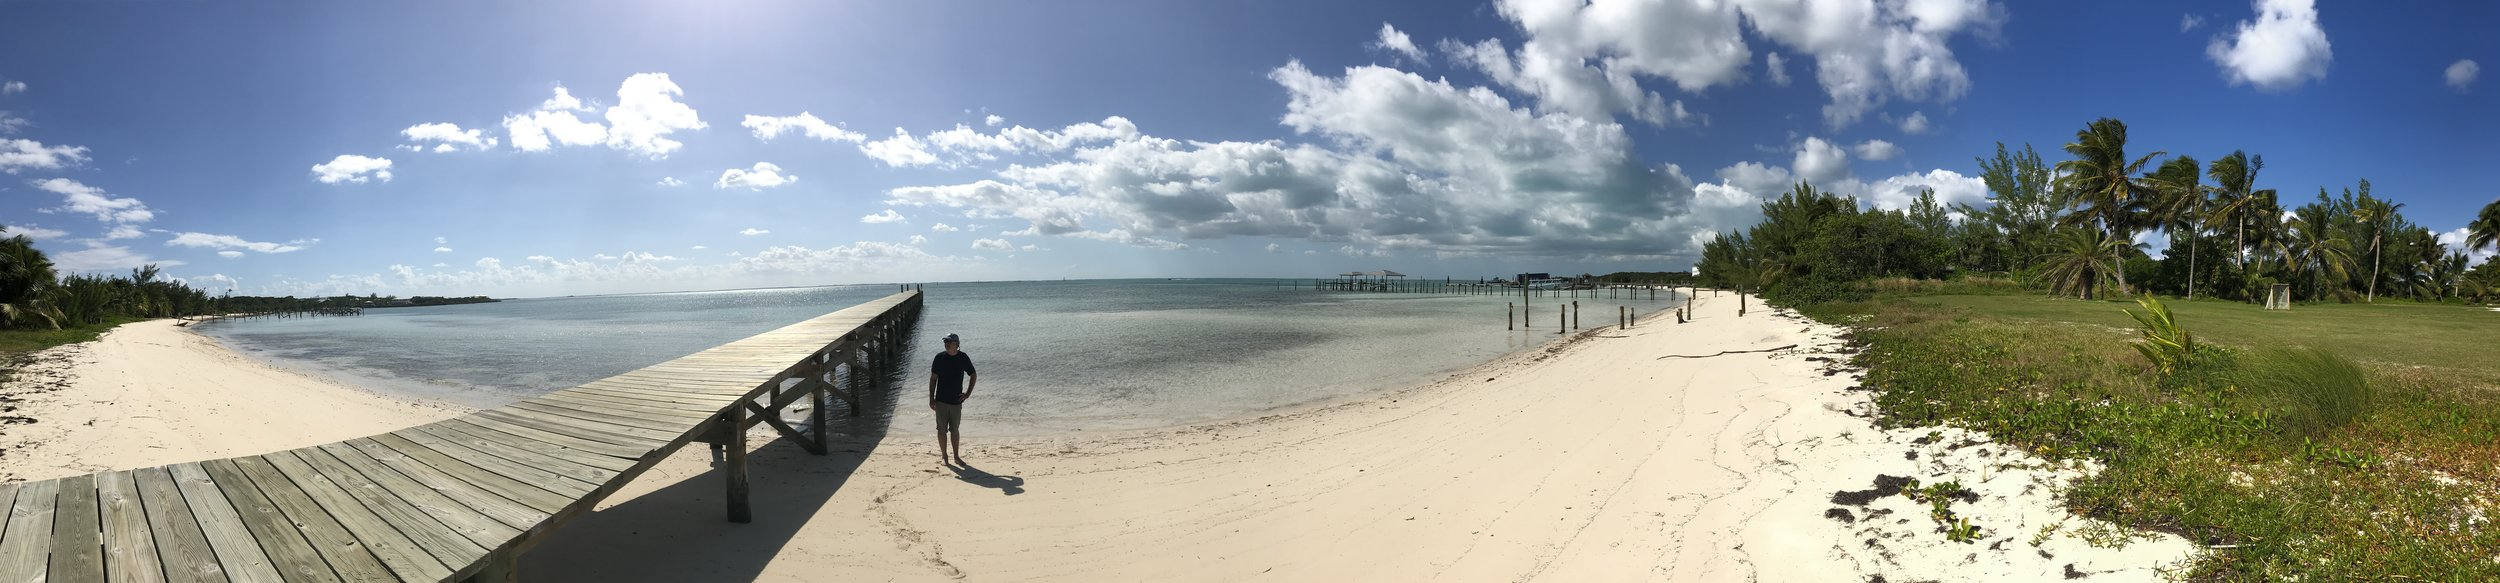 An empty beach and beautiful dock welcomed us on Great Guana Cay.